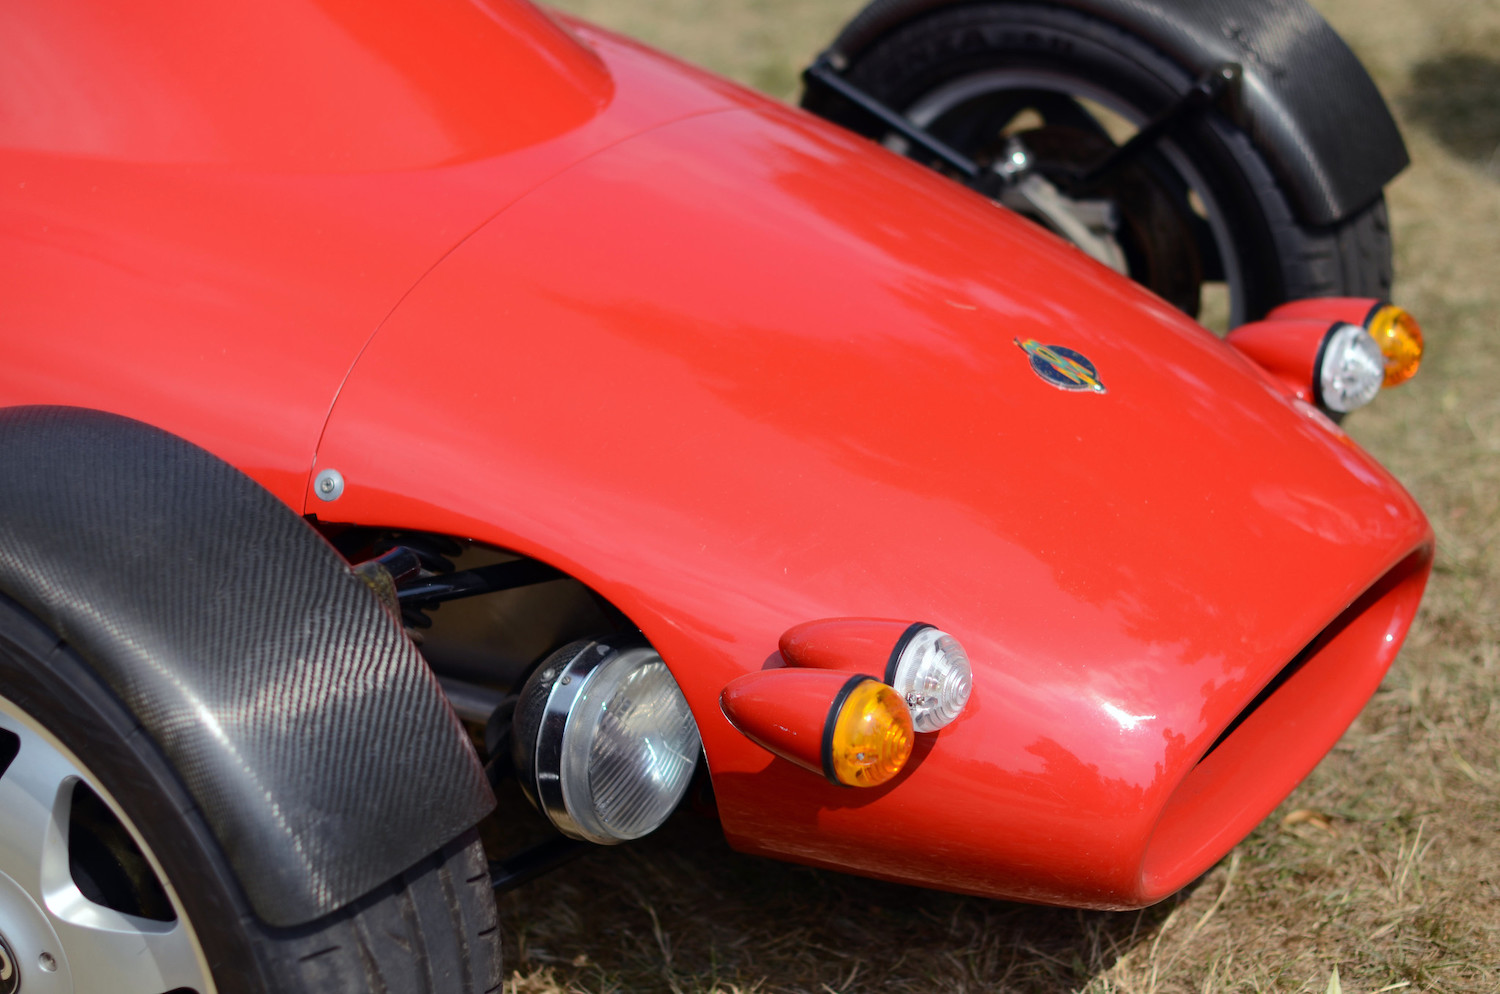 This open-air Rocket is a high-revving featherweight on four wheels